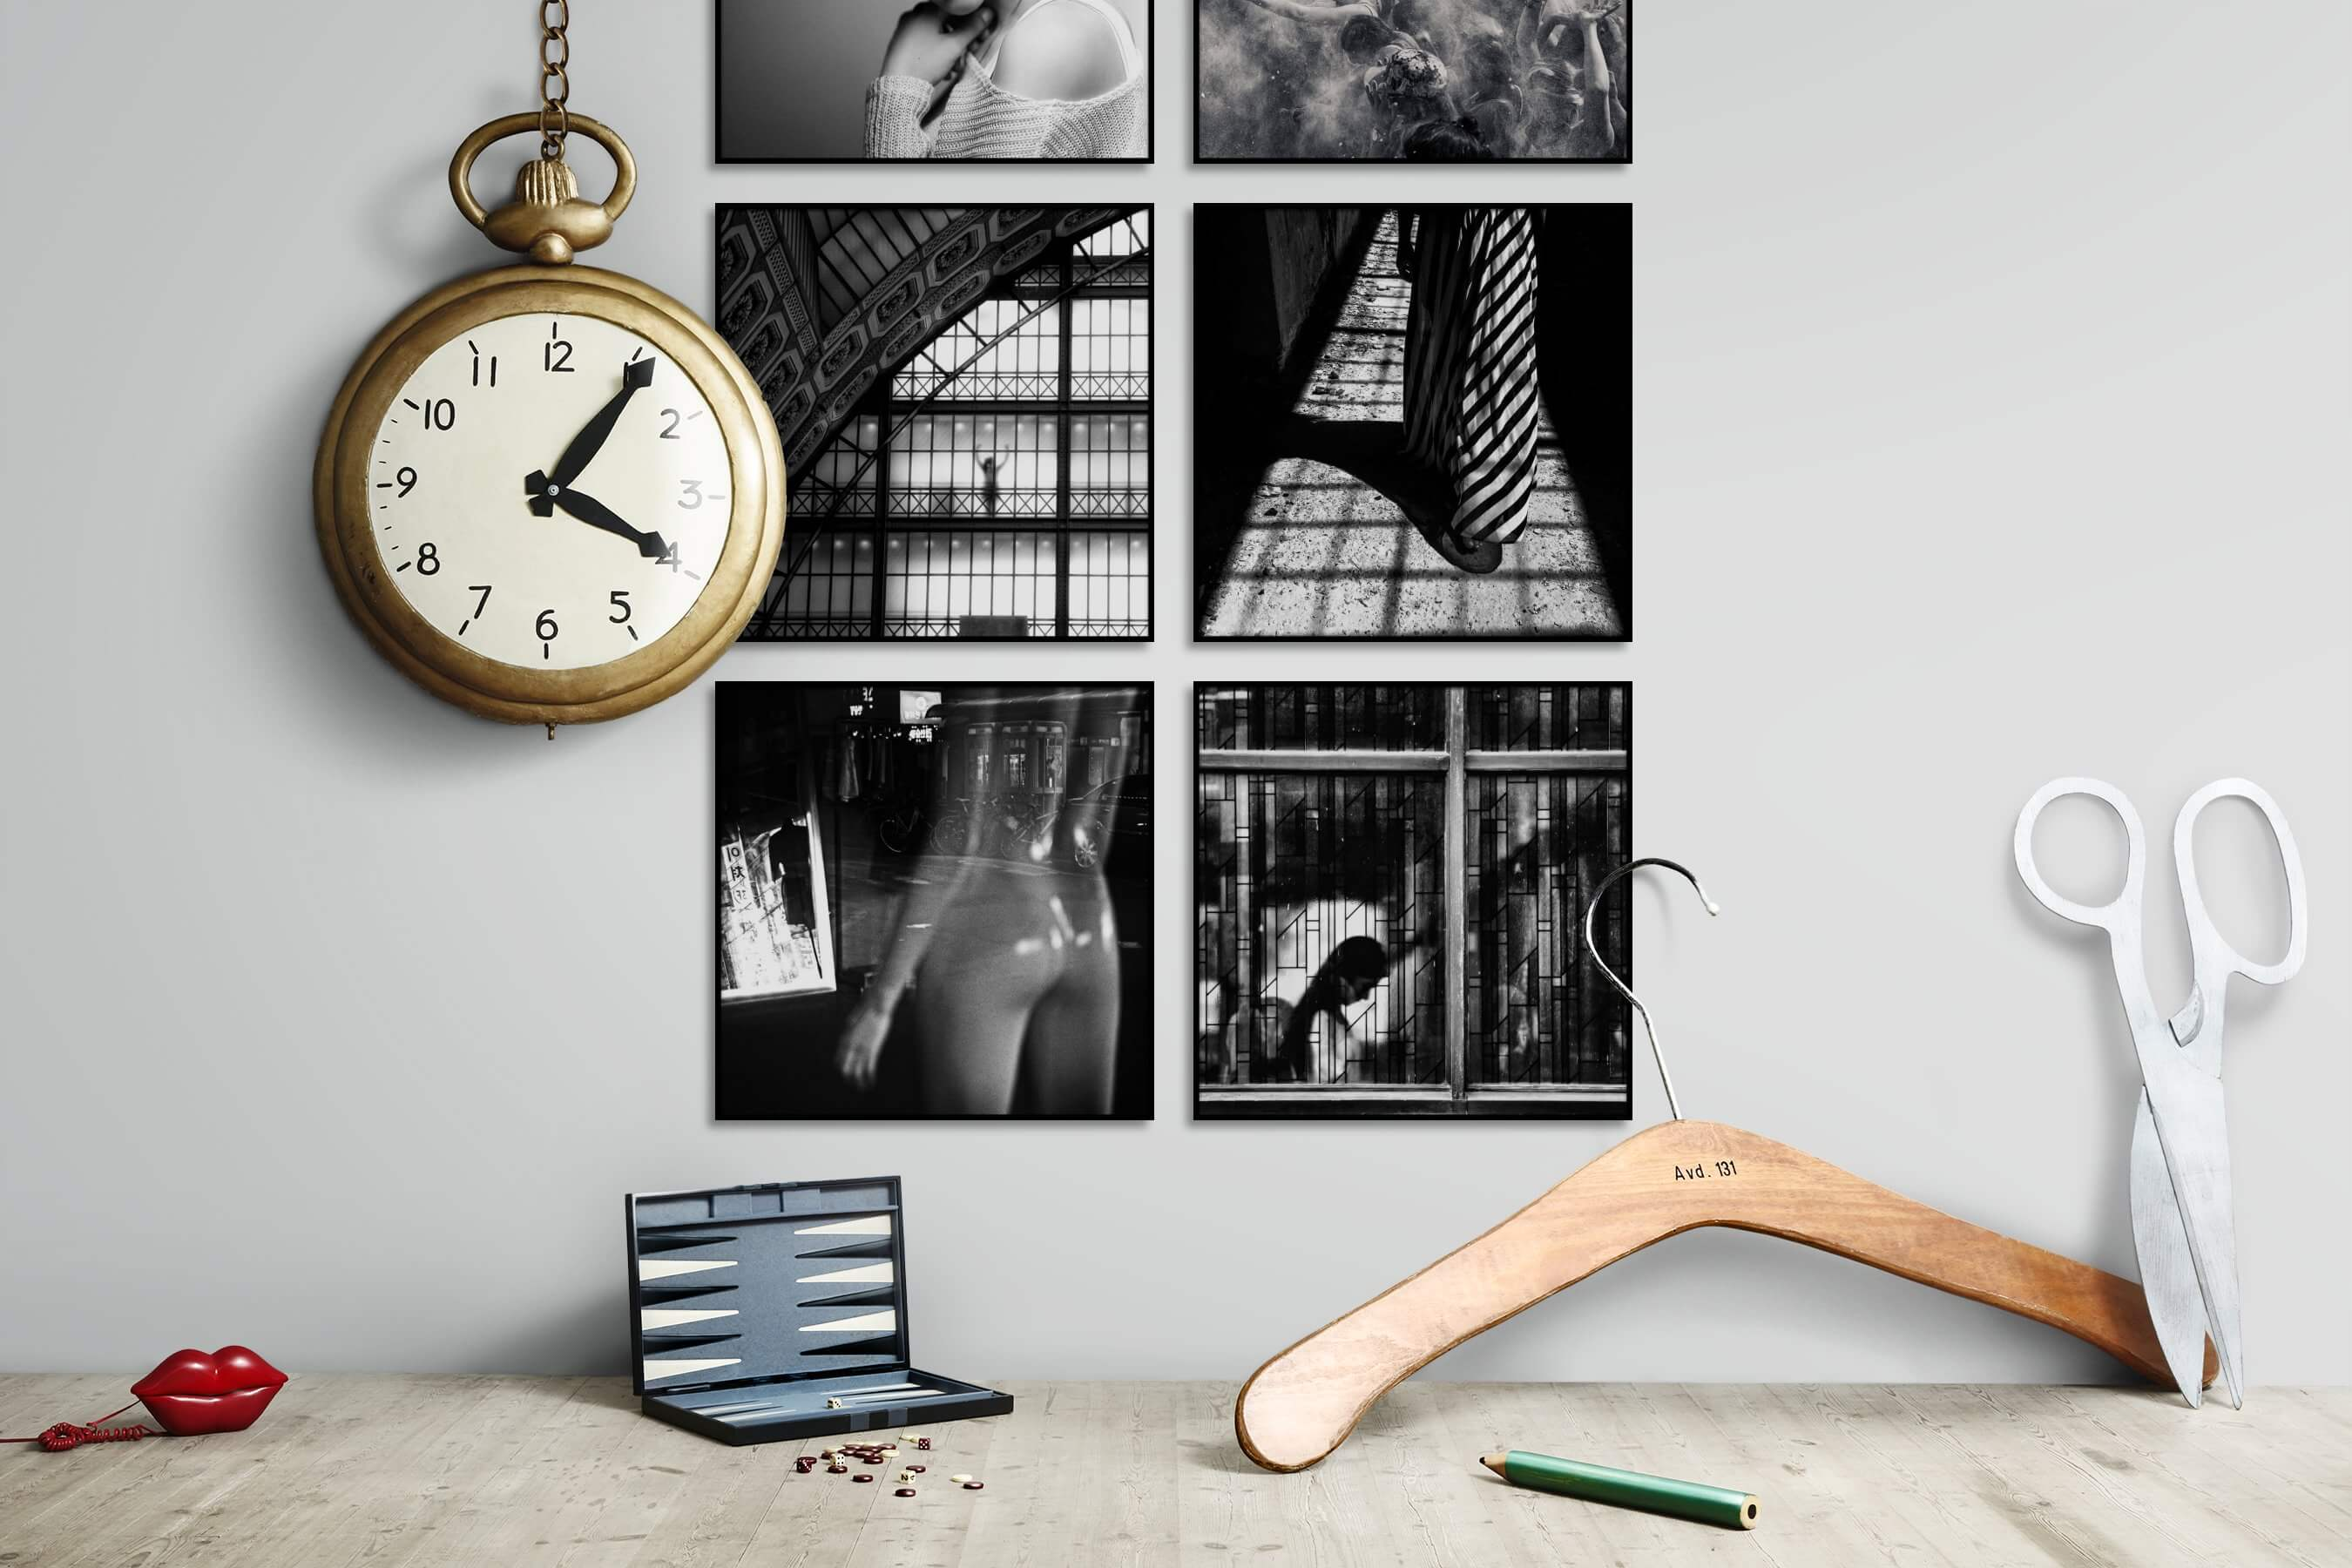 Gallery wall idea with six framed pictures arranged on a wall depicting Fashion & Beauty, Black & White, For the Moderate, Artsy, City Life, and For the Maximalist